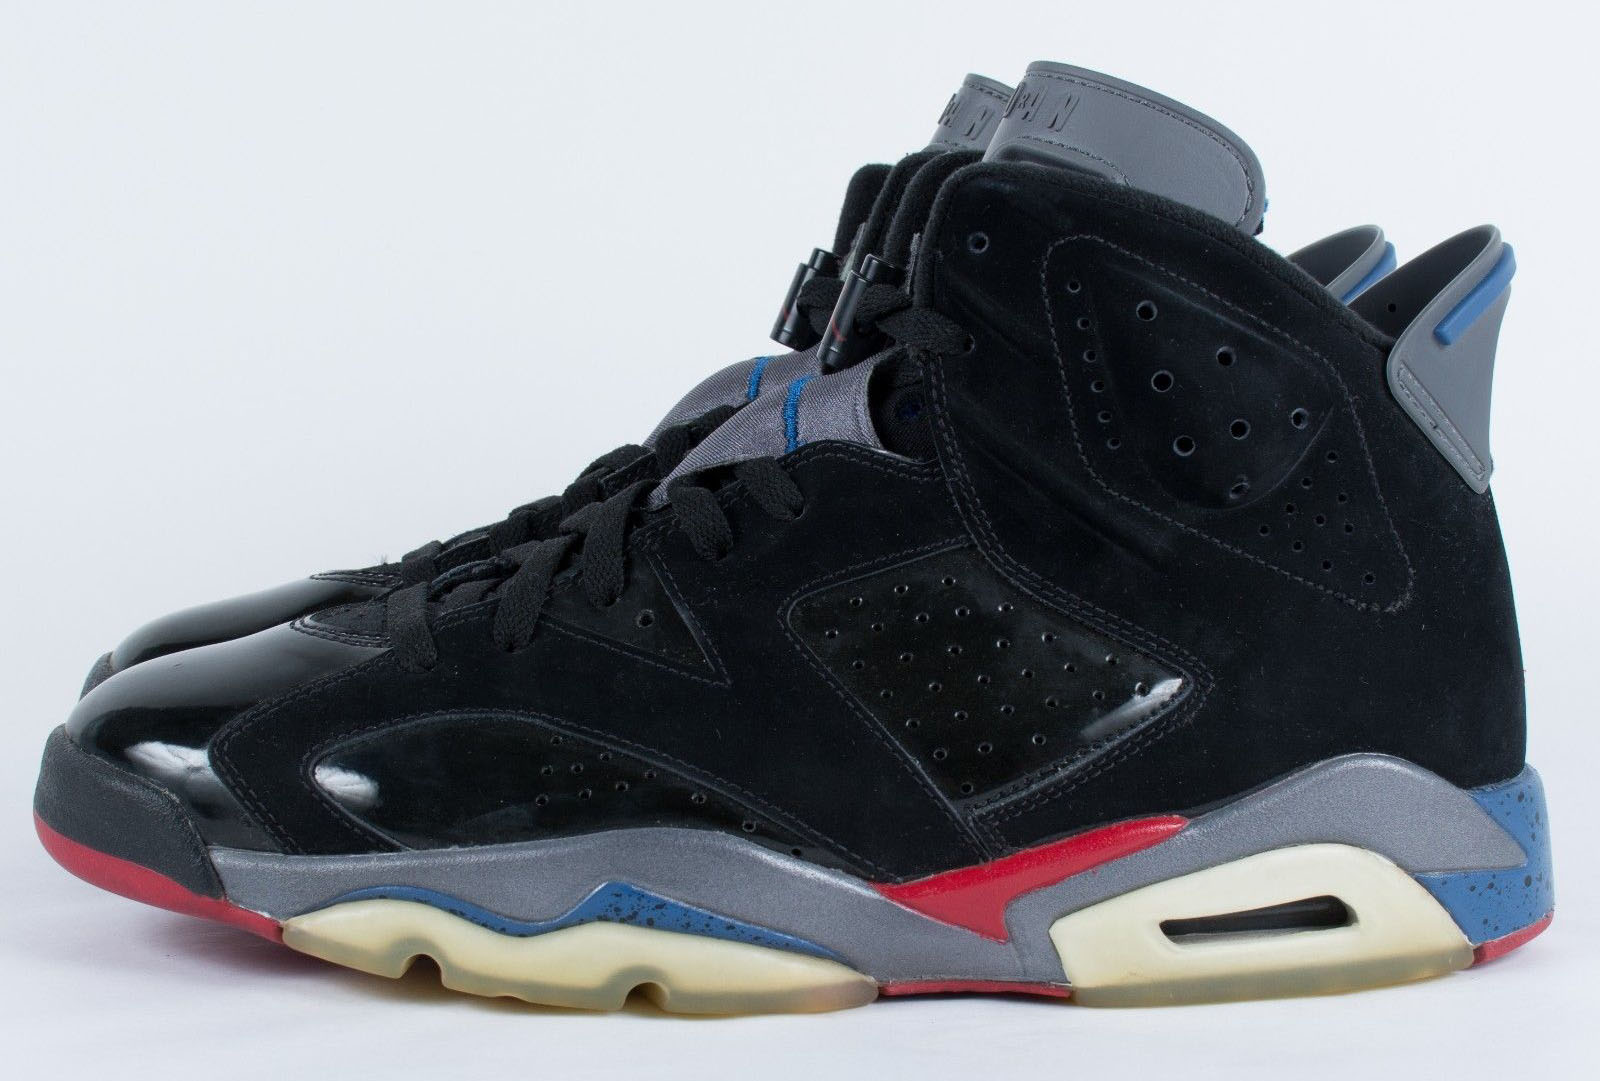 on sale 69082 023d3 ... retro black varsity red colorway 5ca3e 5b351  sweden the daily jordan  air jordan 6 pistons 2010 air jordans release dates more jordansdaily 11d28